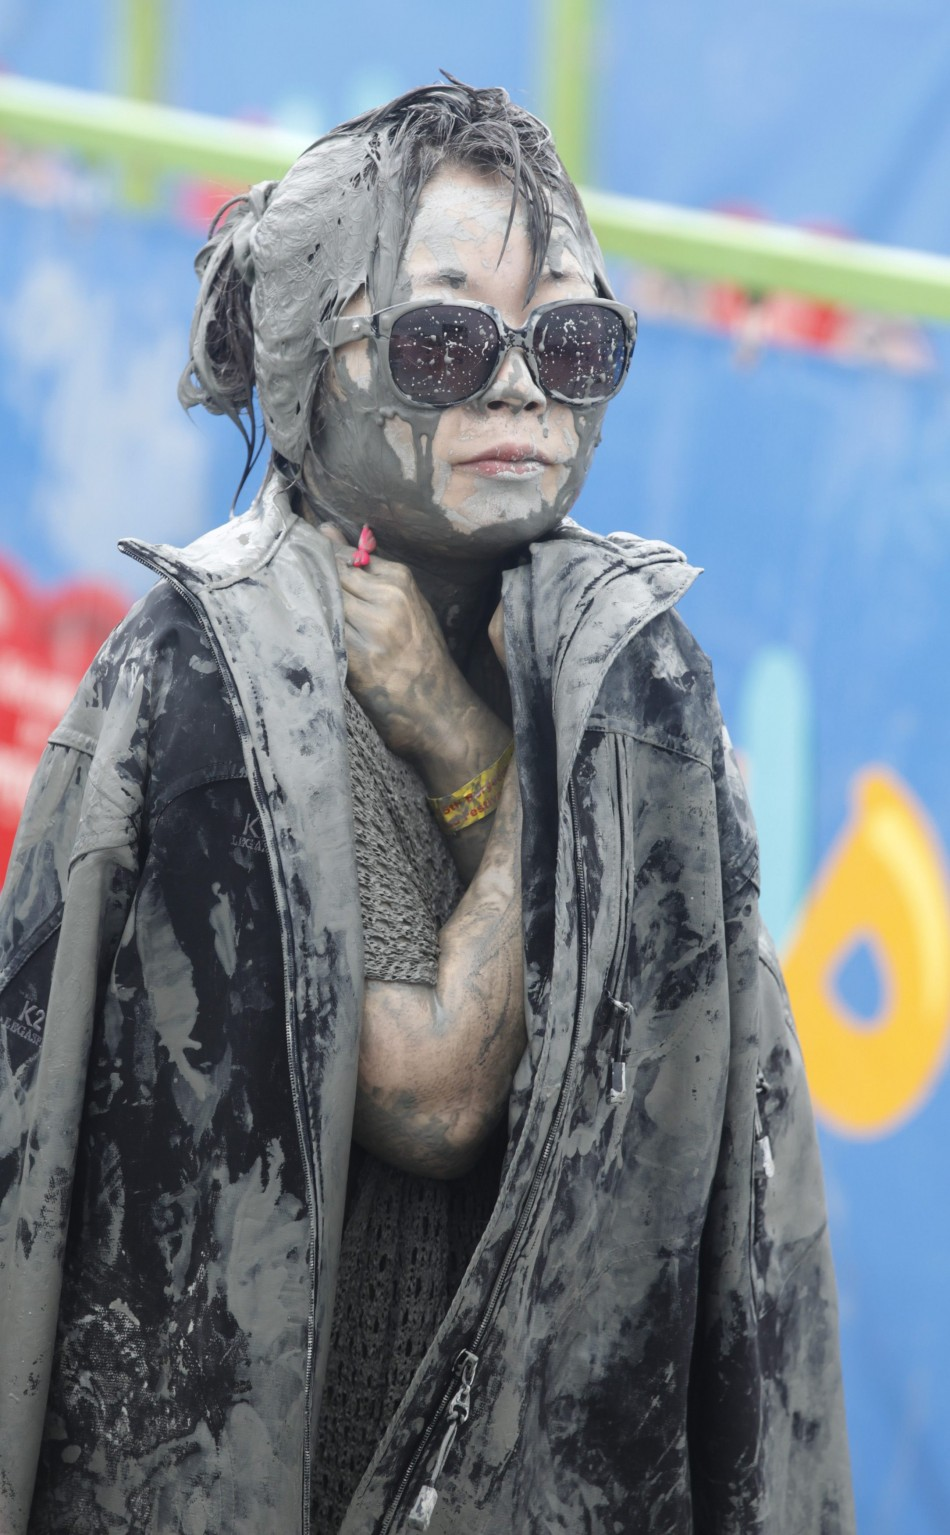 A woman wears a jacket to warm herself during the Boryeong Mud Festival at Daecheon beach in Boryeong